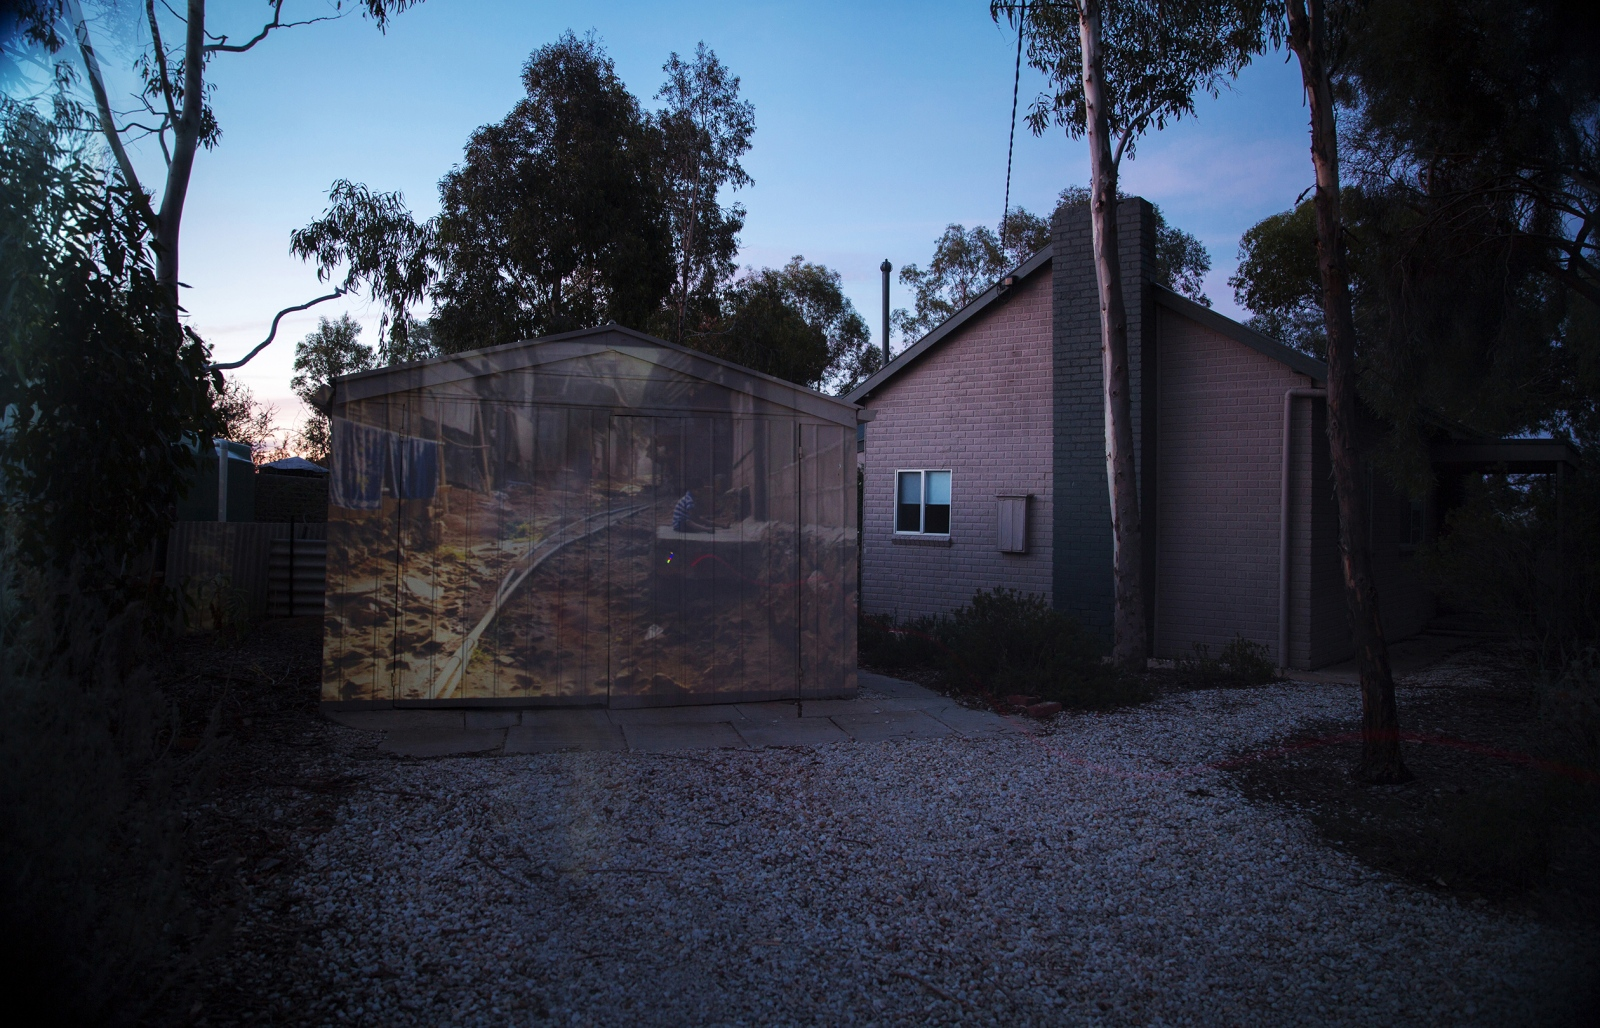 A projection of a young boy in Tham Hin refugee camp on the Thai Burma Border projected onto a home where a family from Yangon now resides in rural Victoria, Australia.  VICTORIA, AUSTRALIA, 2016.